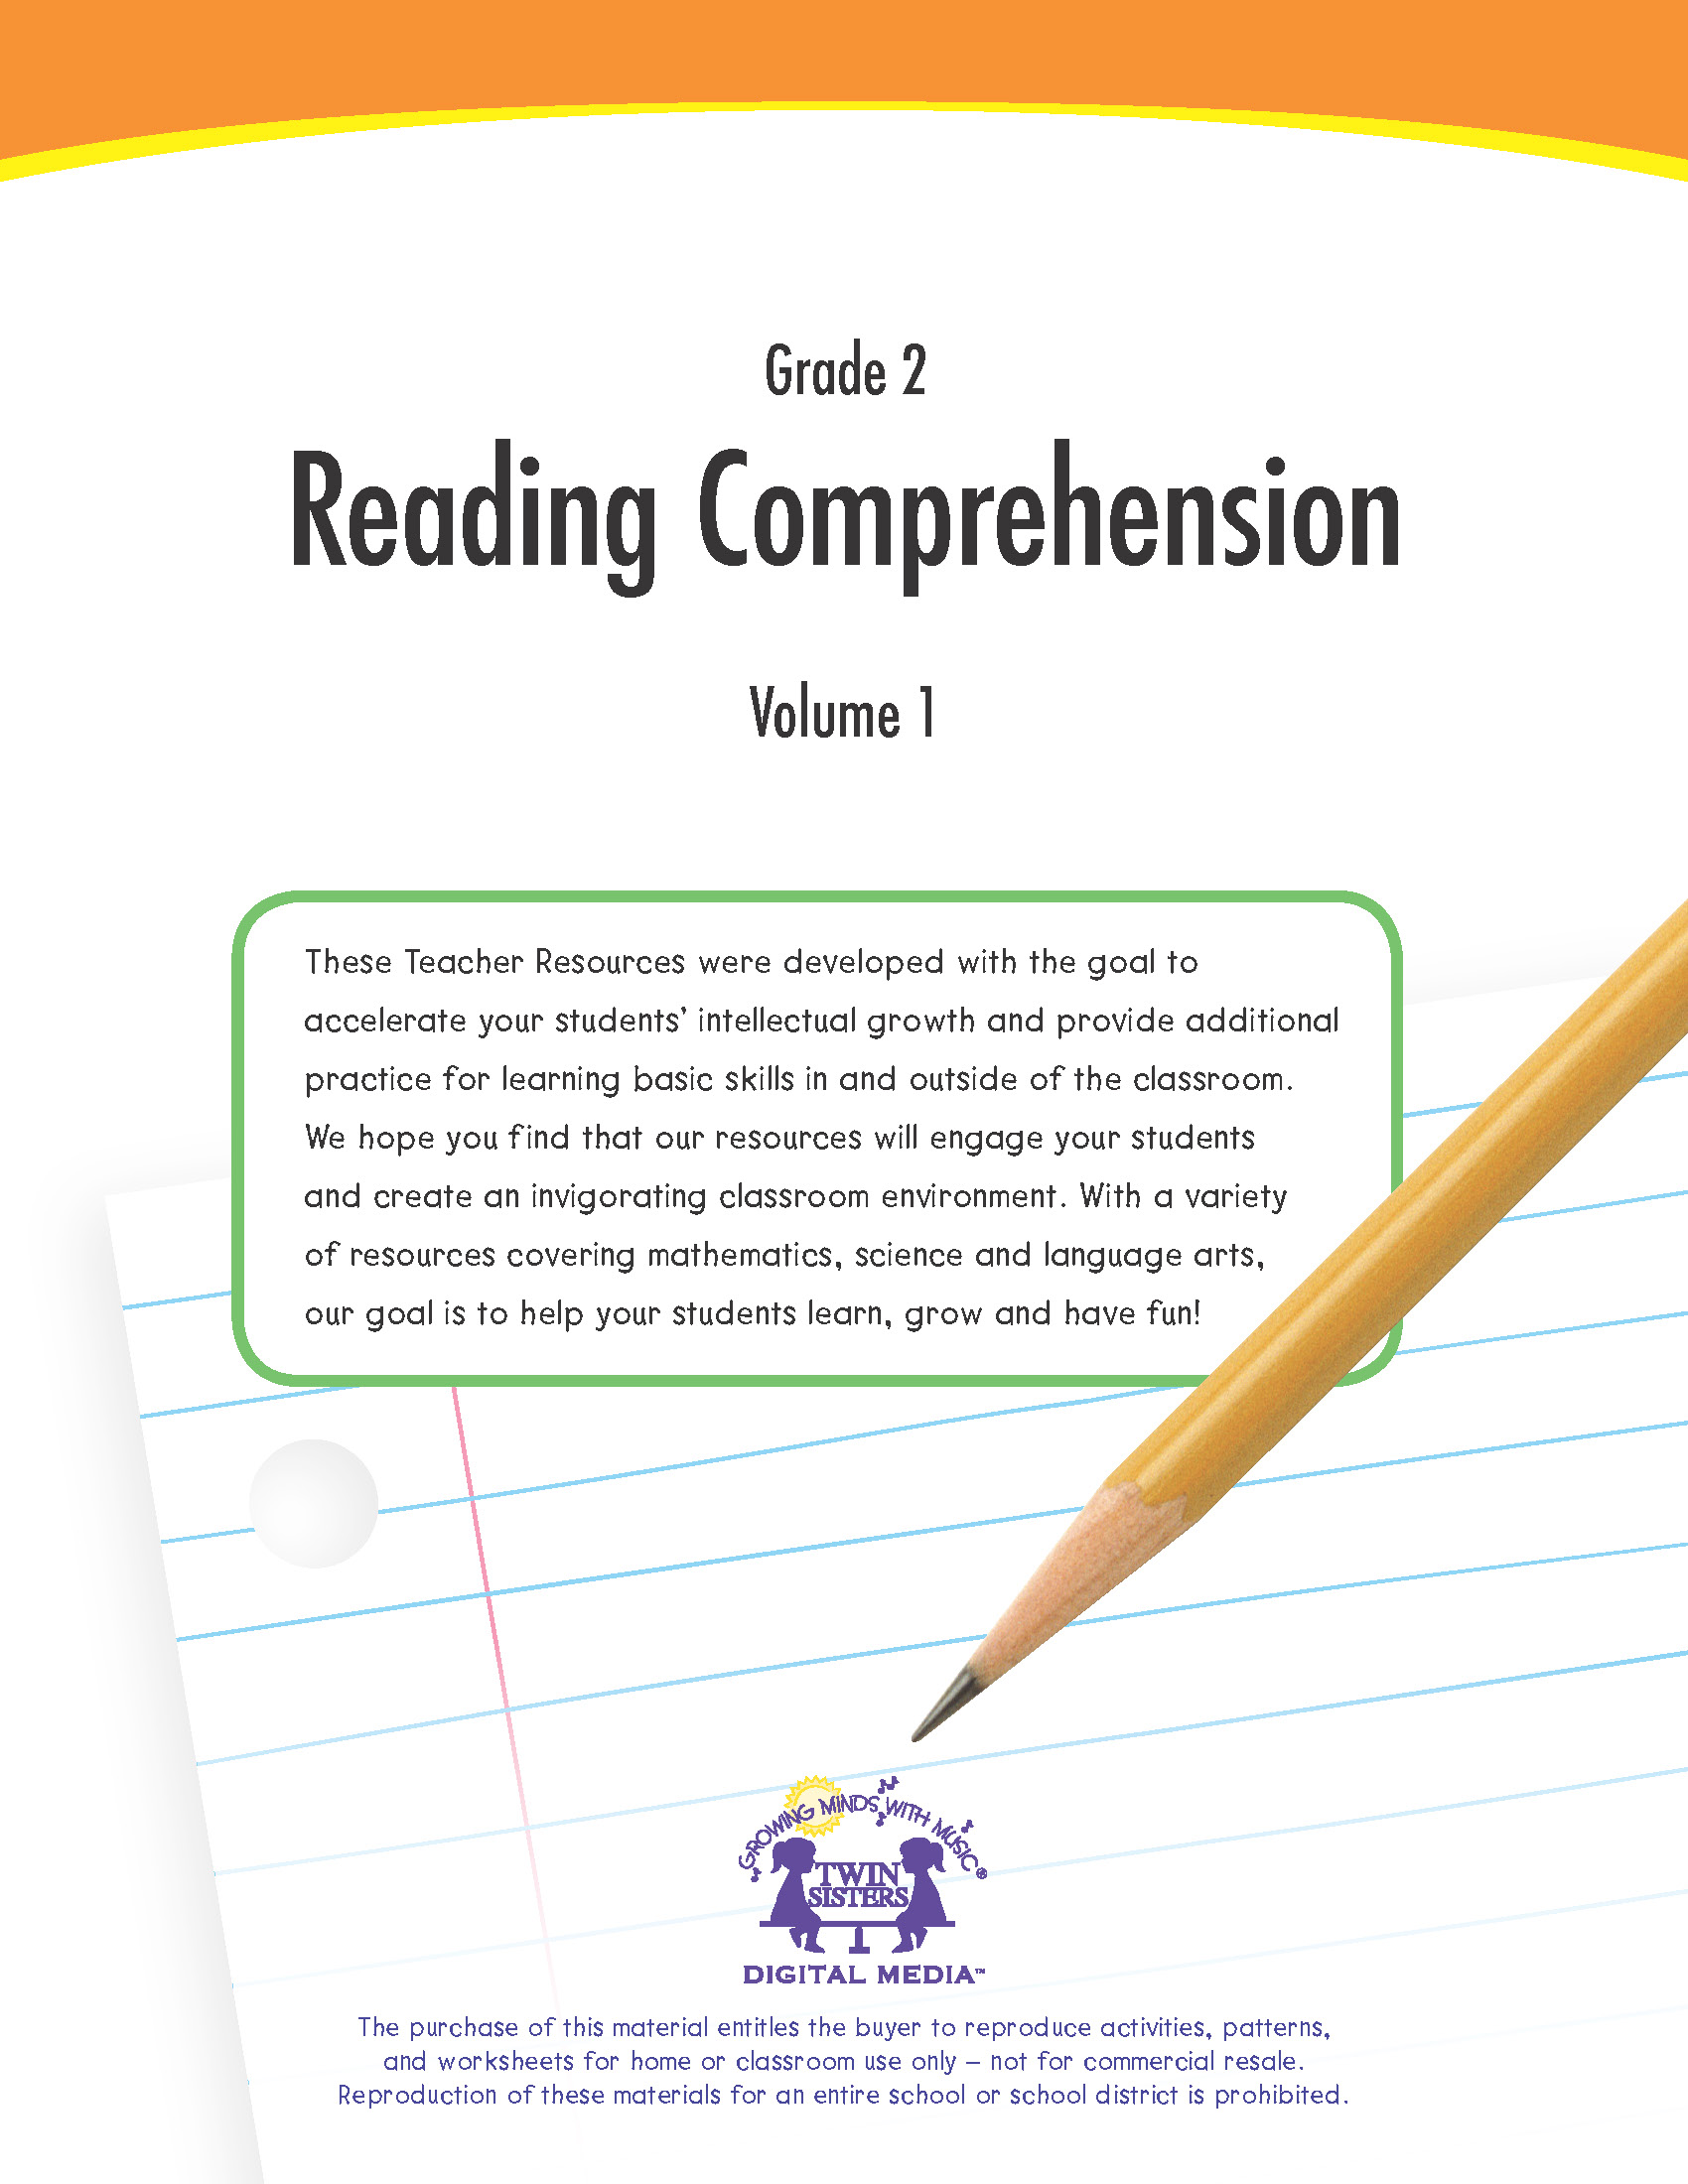 Grade 2 Reading Comprehension Volume 1